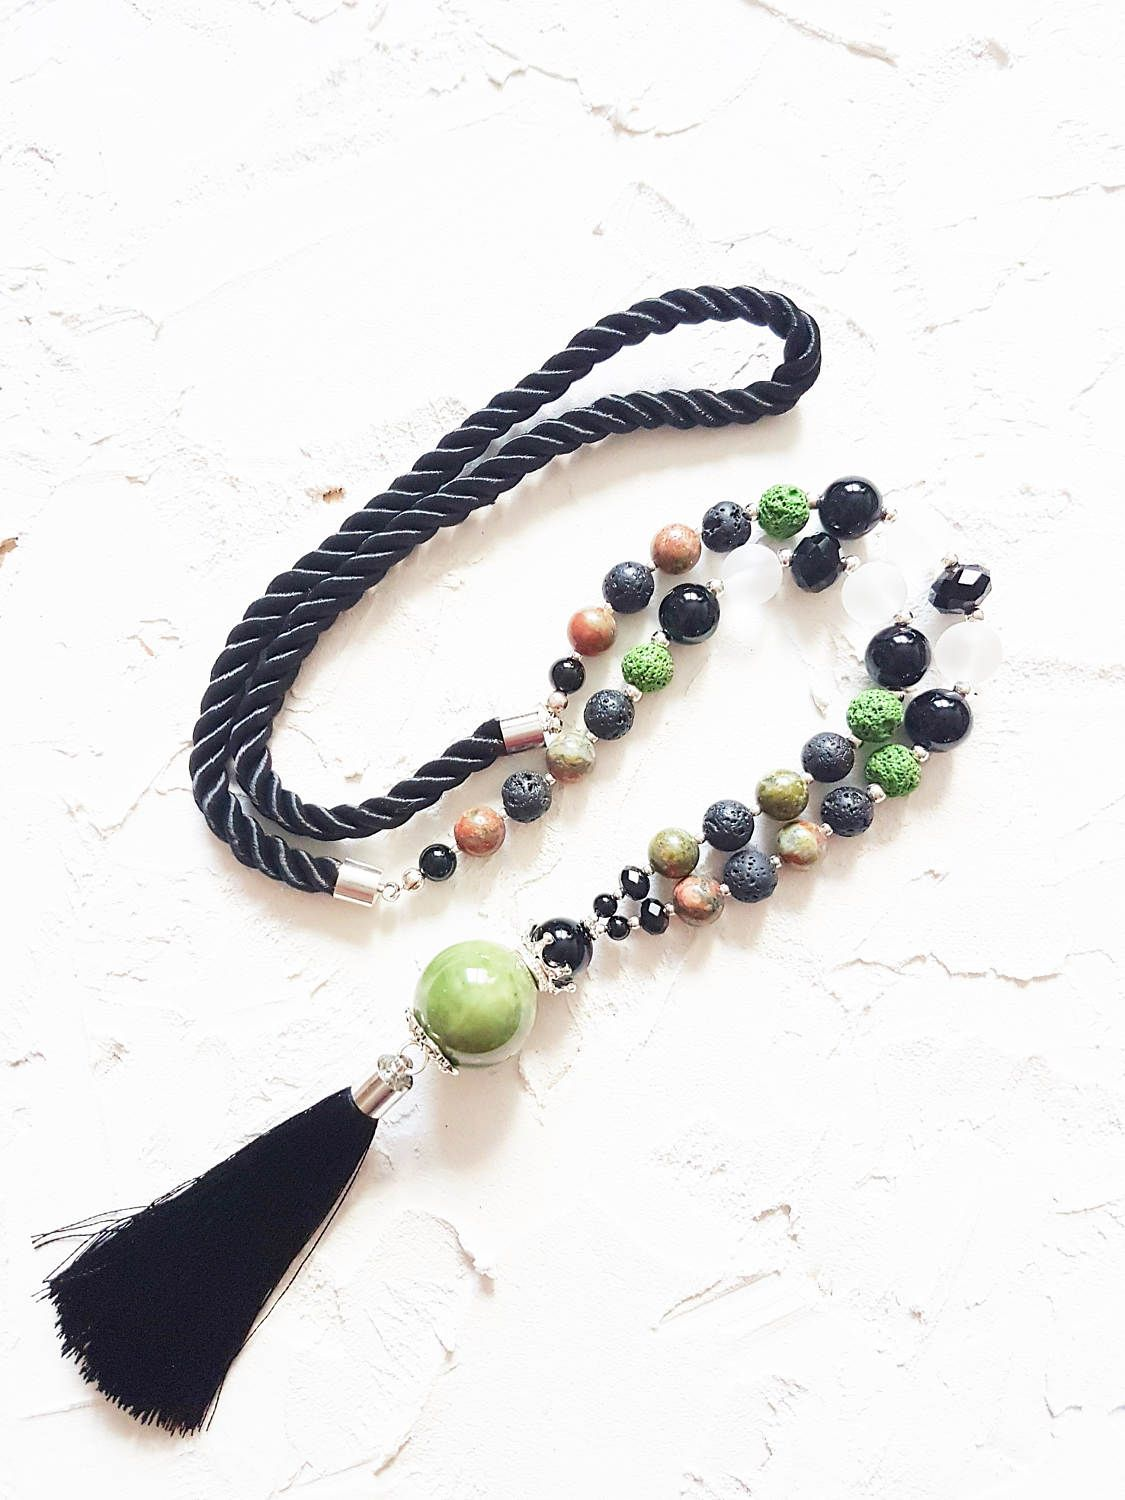 Moss green necklace, Black tassel necklace, Clear necklace, Quartz necklace, Lava necklace, Unakite necklace, Onyx necklace, Womens gift by GentleColorsJewelry on Etsy